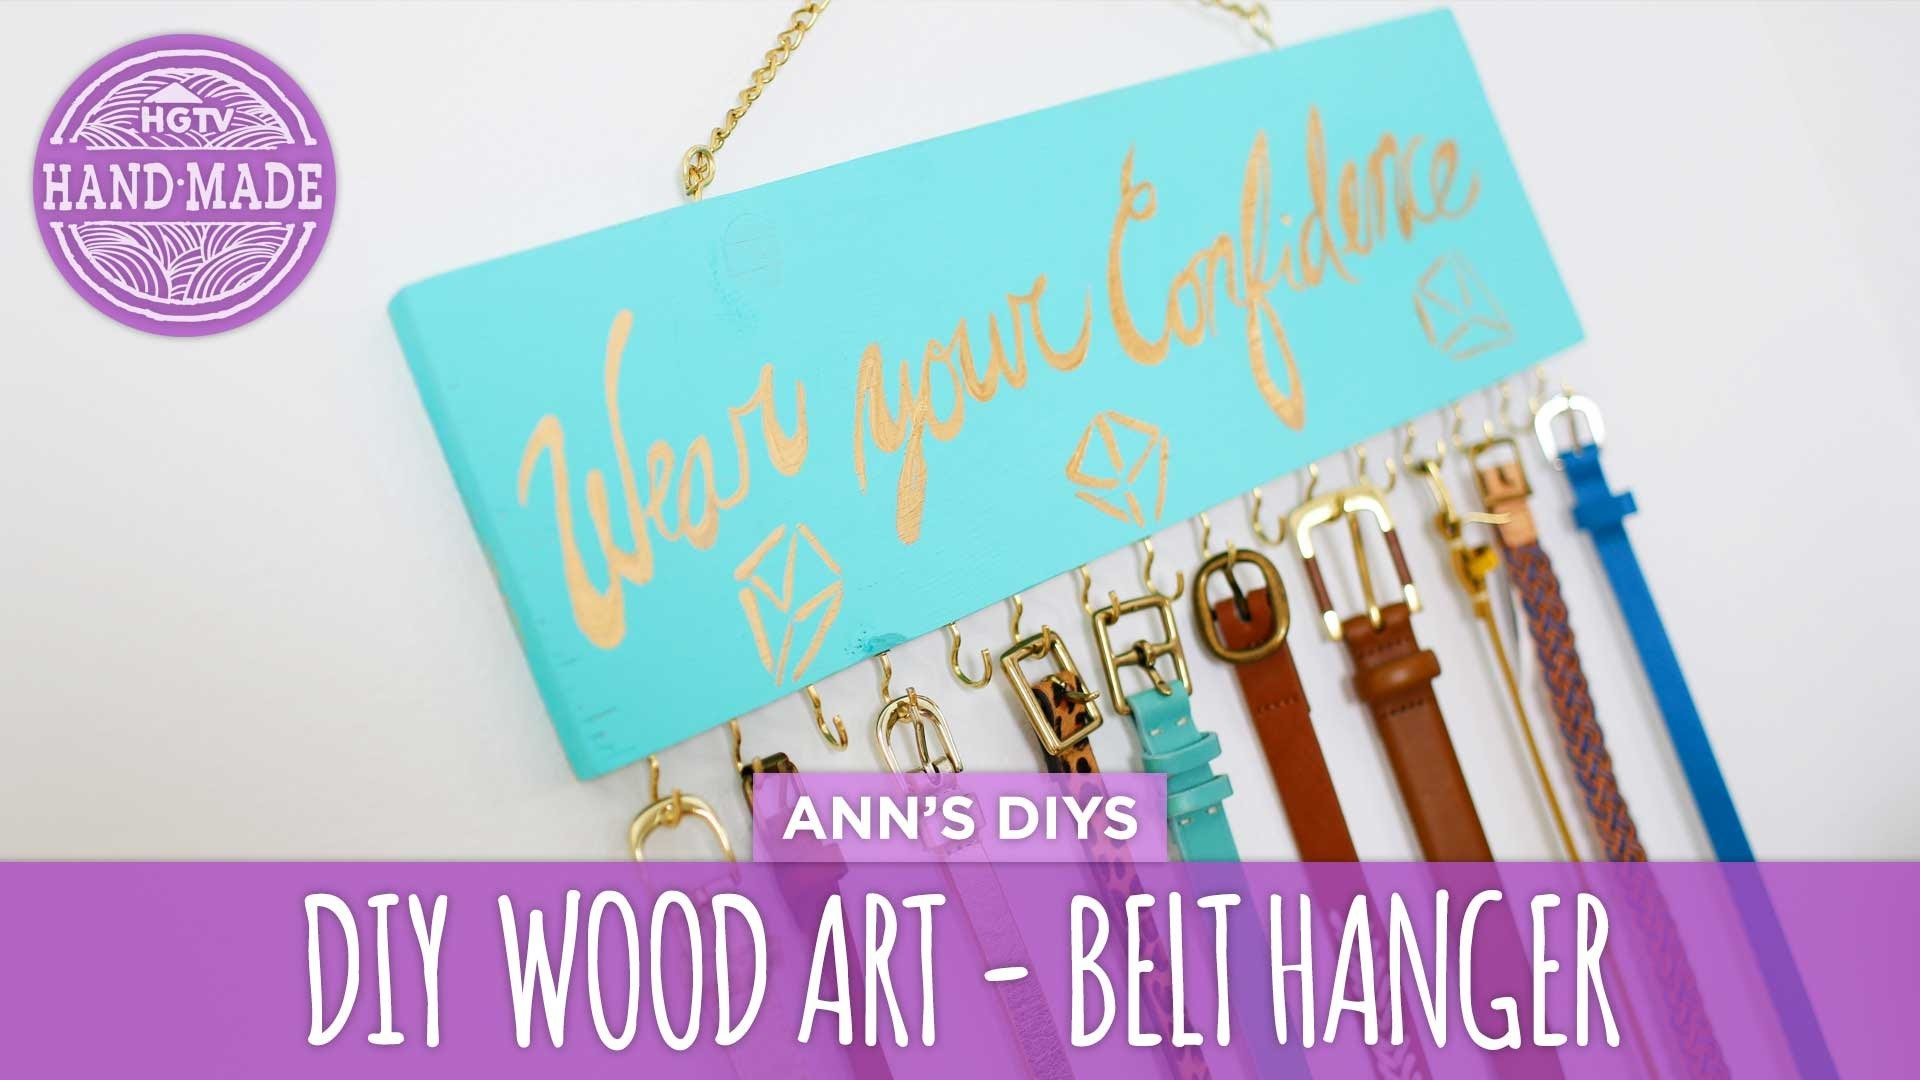 DIY Belt Hanger & Inspirational Wood Art - HGTV Handmade